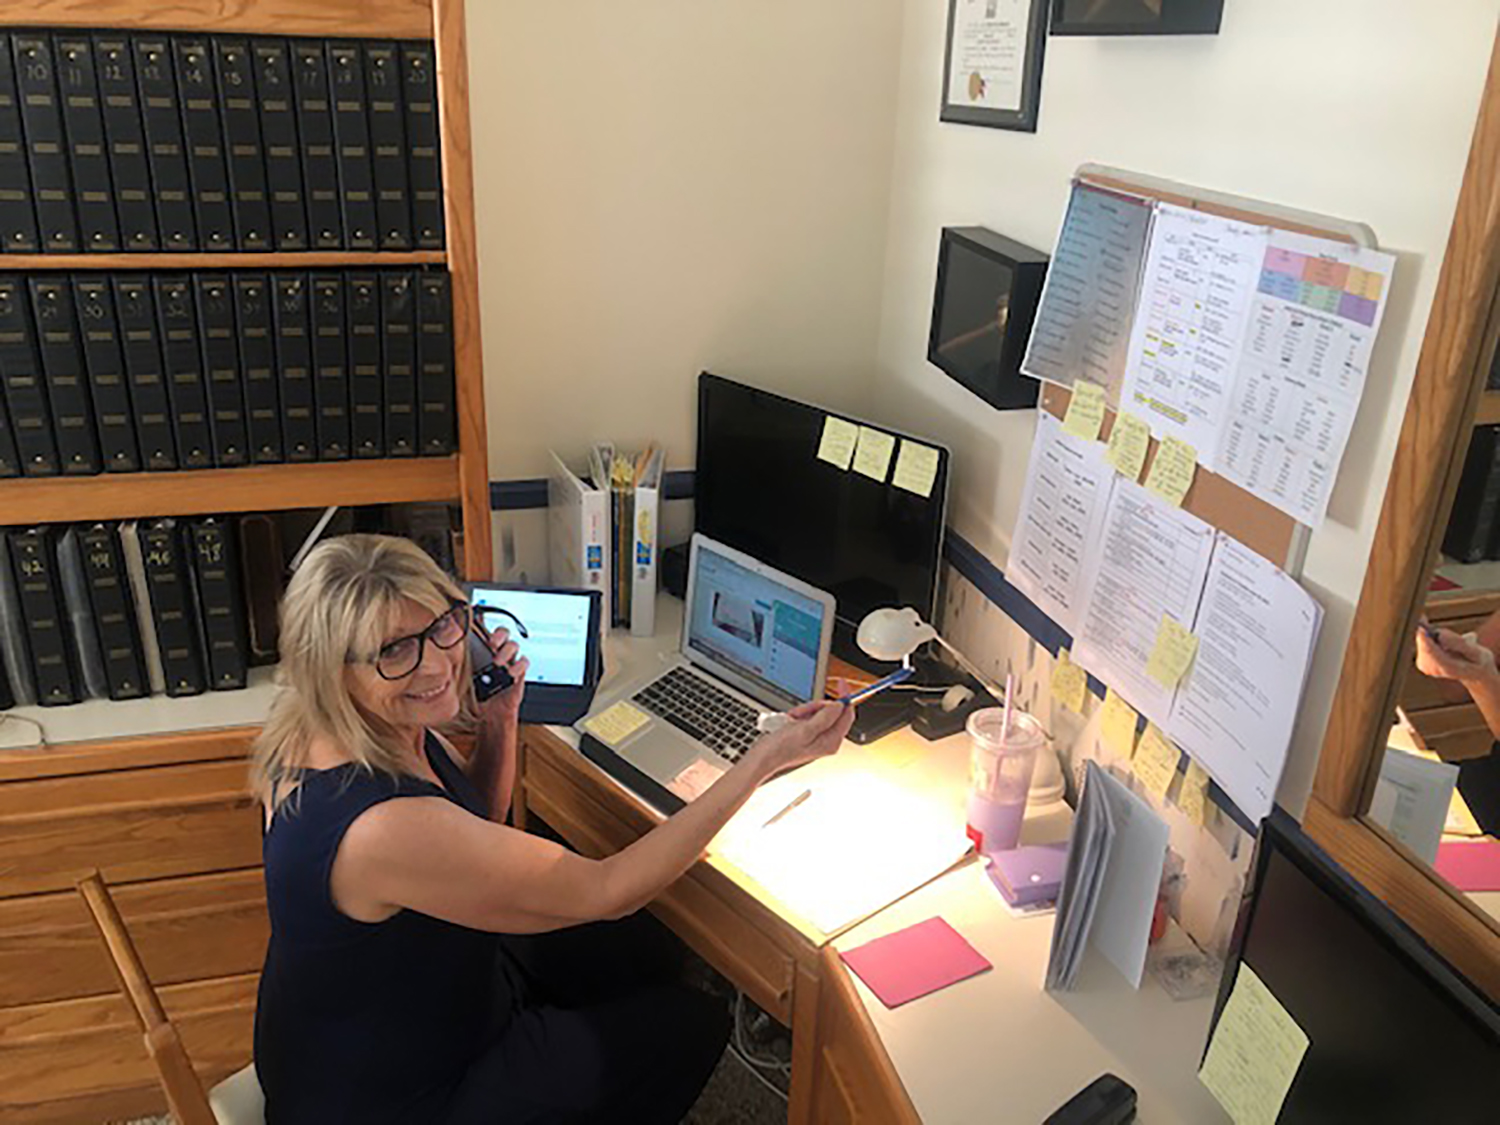 Ms. Bachrach (K) uses her home office.